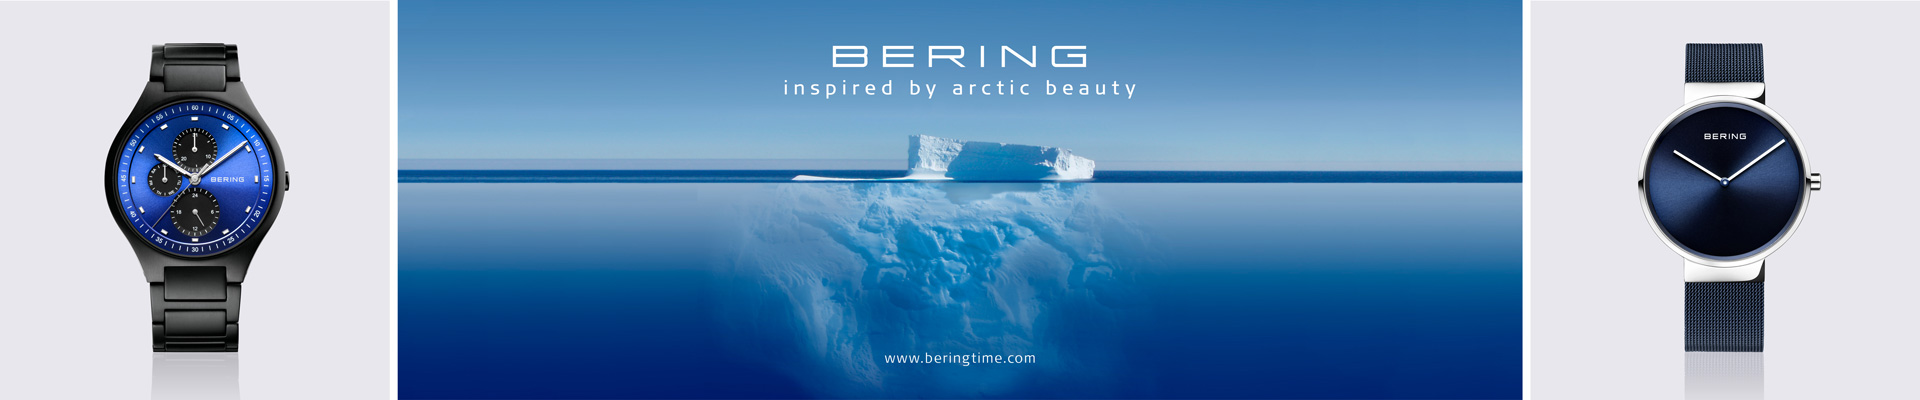 Bering Limited Edition